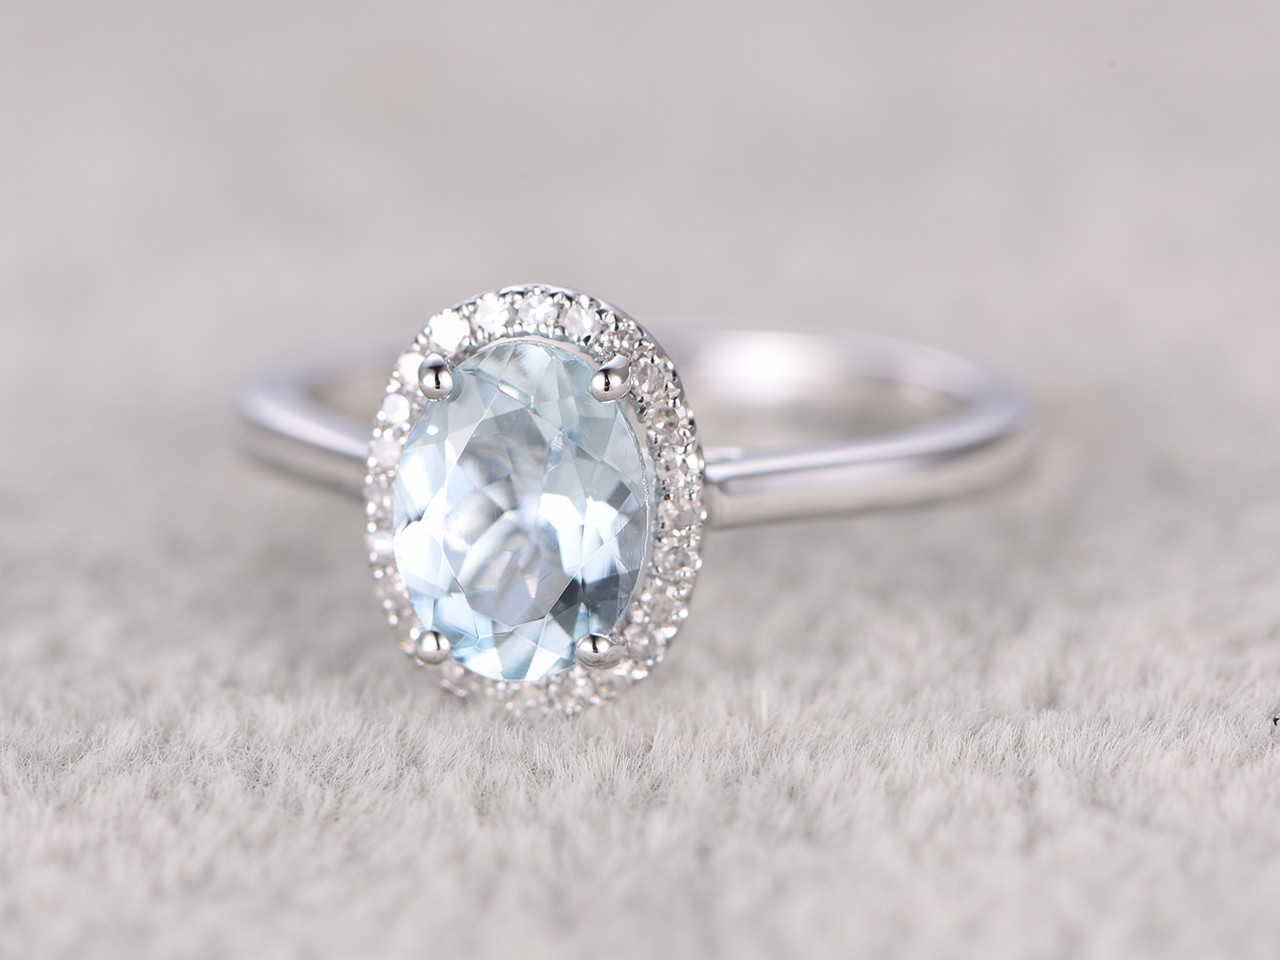 Non Metal Wedding Bands >> Antique Design Oval Aquamarine Engagement Ring non traditional wedding rings | BBBGEM